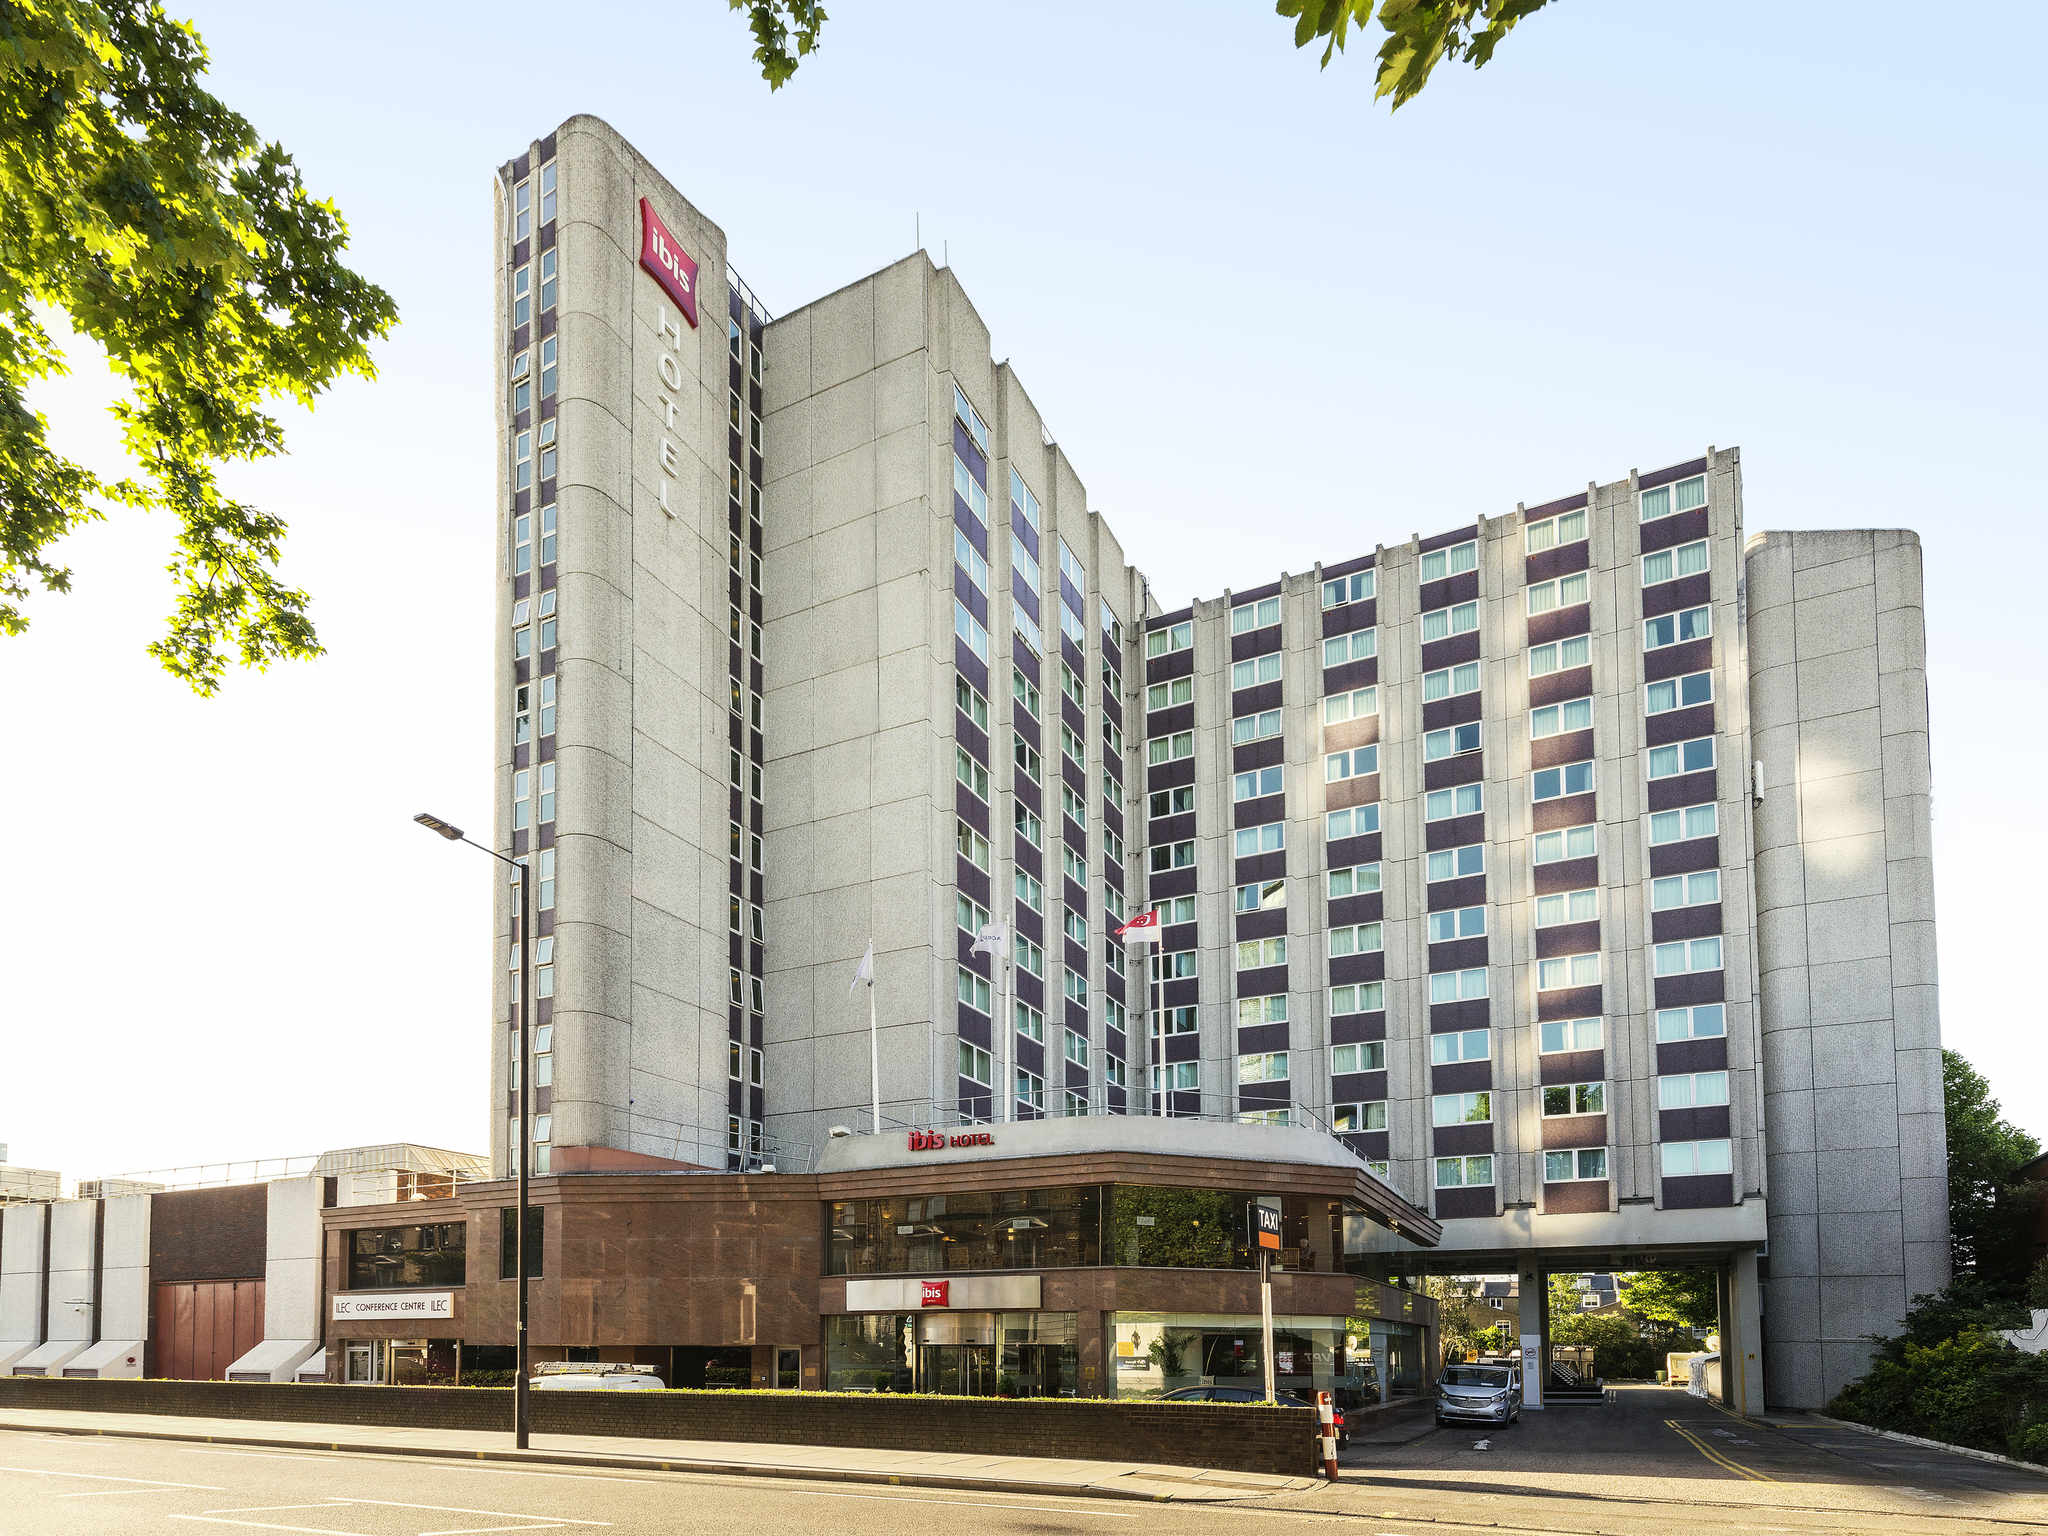 Hotell – ibis London Earls Court